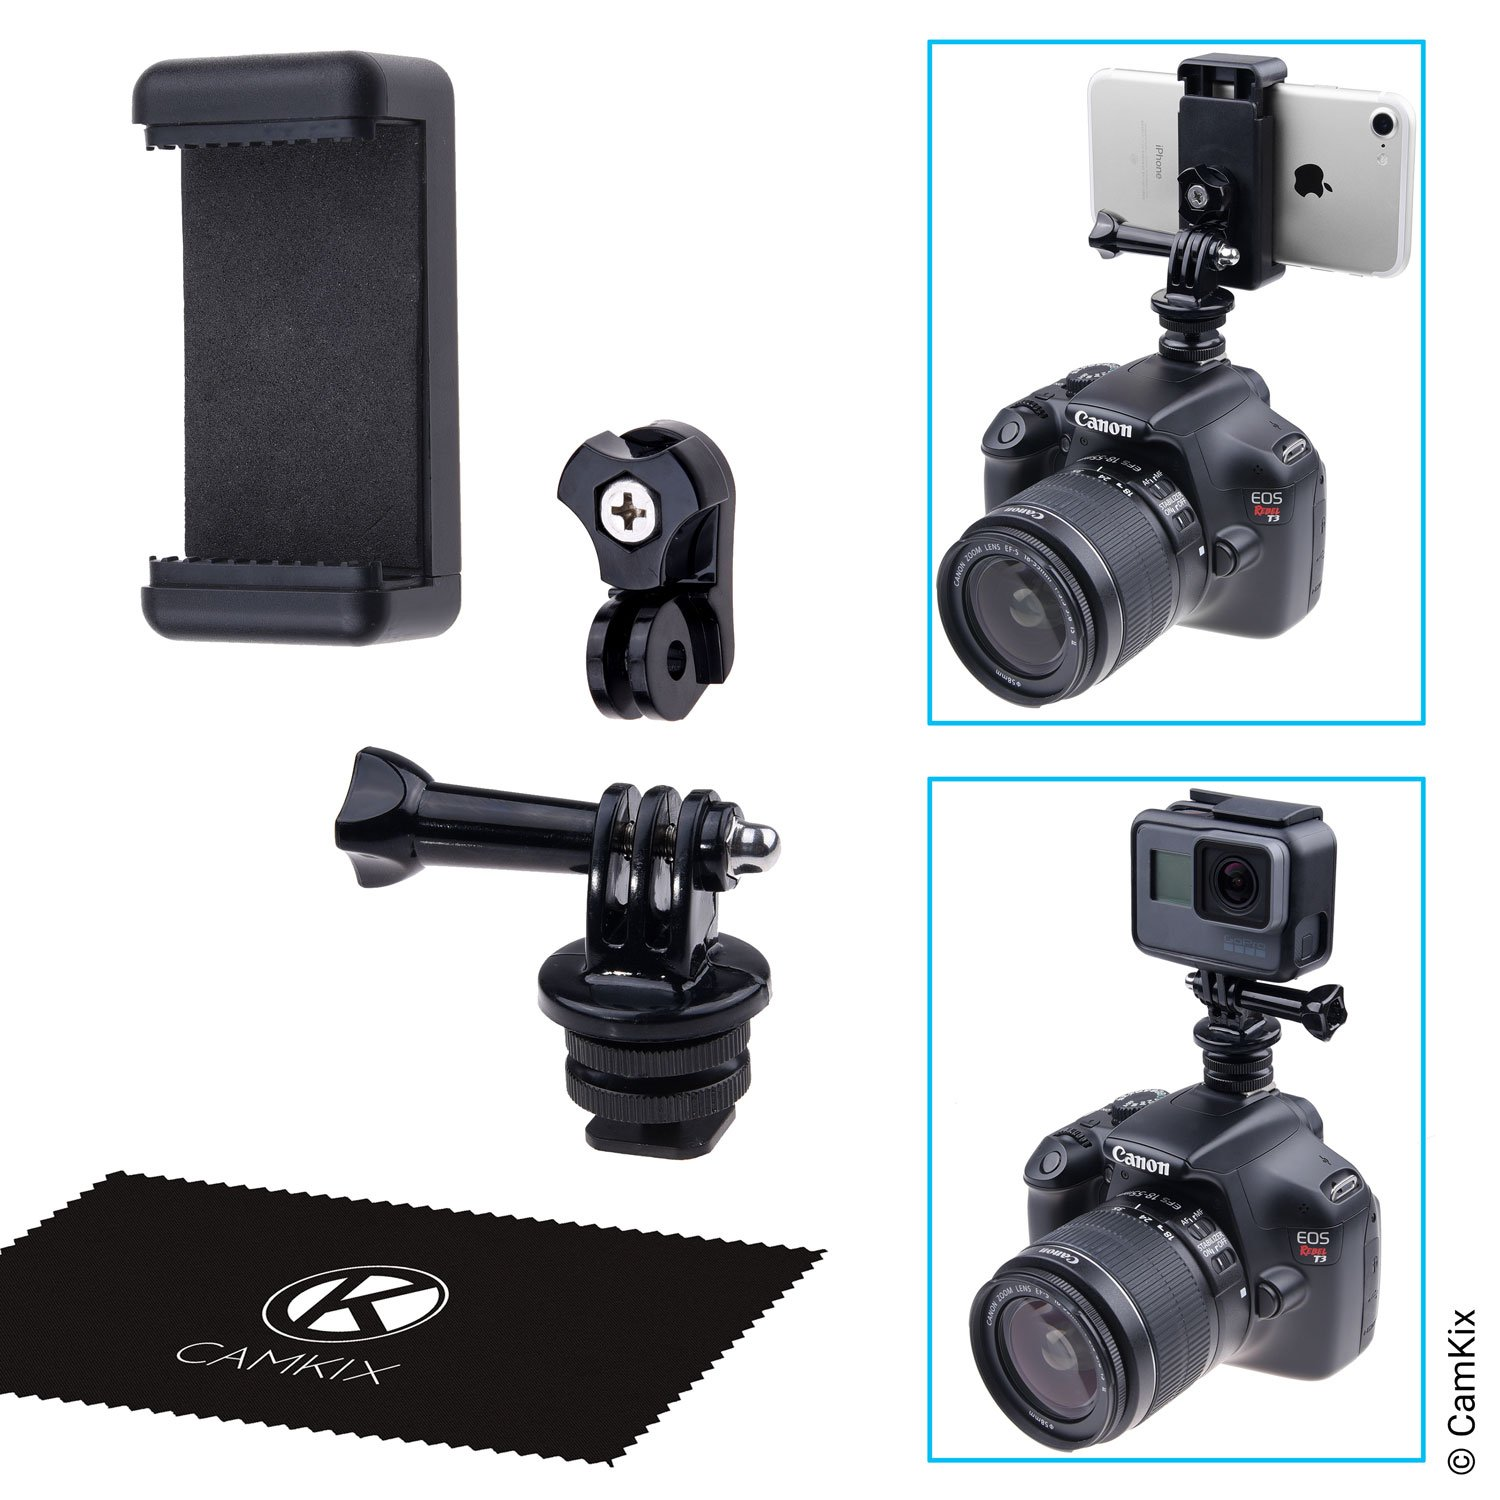 Hot Shoe Mount Adapter Kit - Attach your Phone or GoPro Hero to the Flash Mount of your DSLR Camera - Record your Photo Shoot or use Phone Apps for Lighting, Monitoring or Controlling CamKix D0235-GPP-HOT